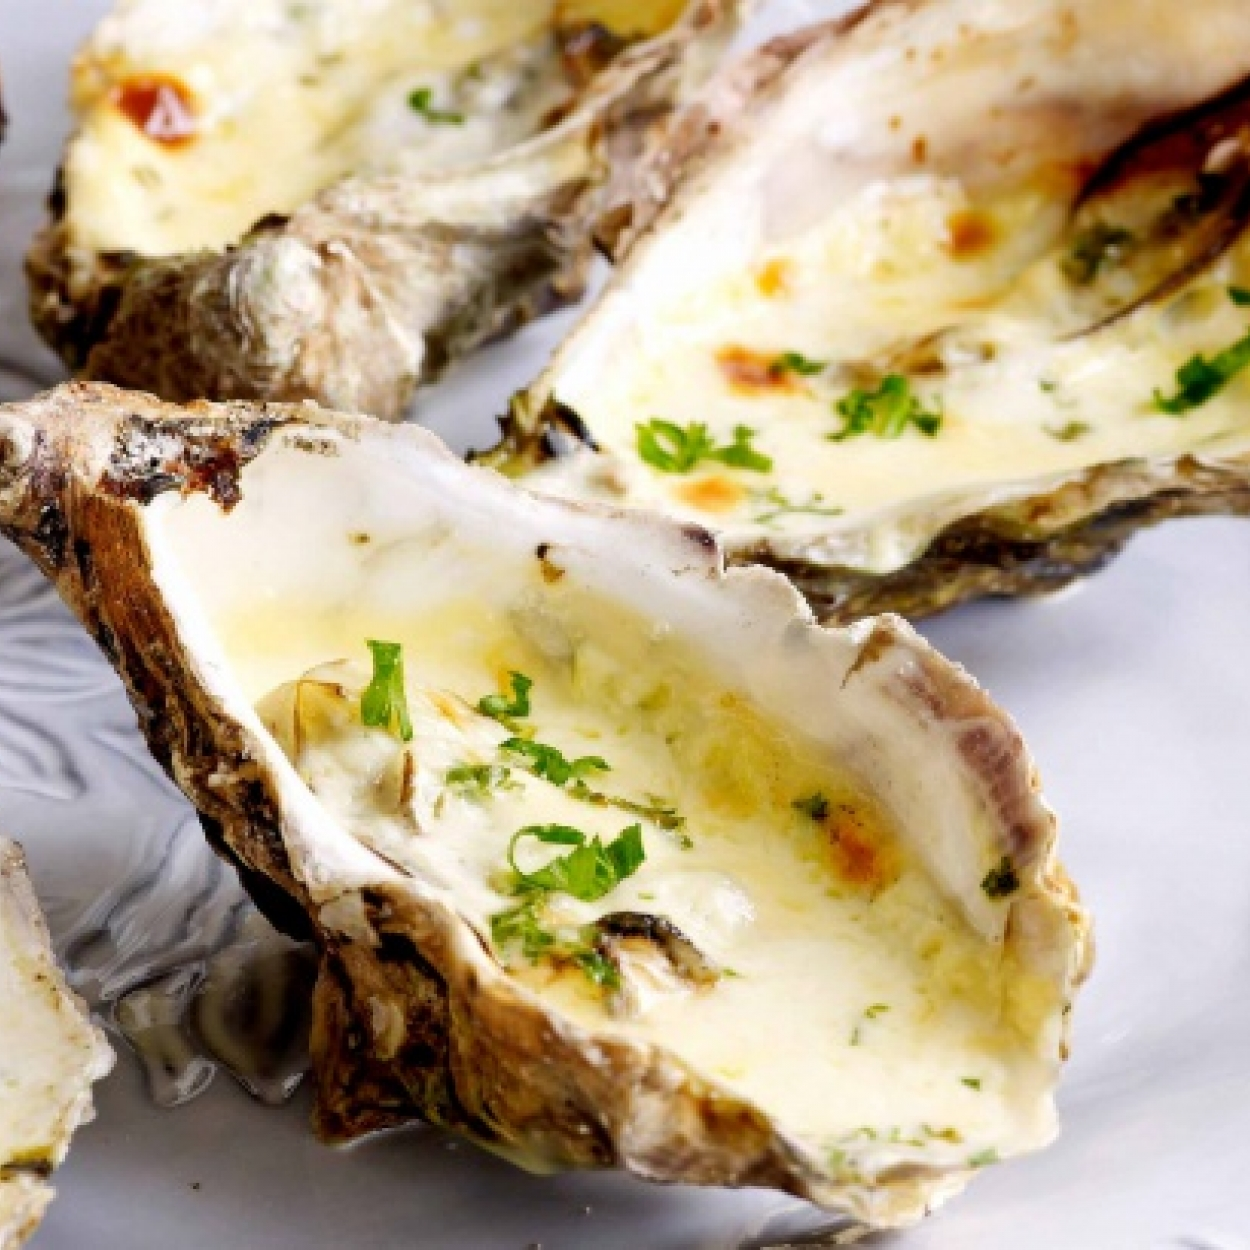 Recette Huîtres gratinées au champagne,Oesters gegratineerd met champagne Carrefour